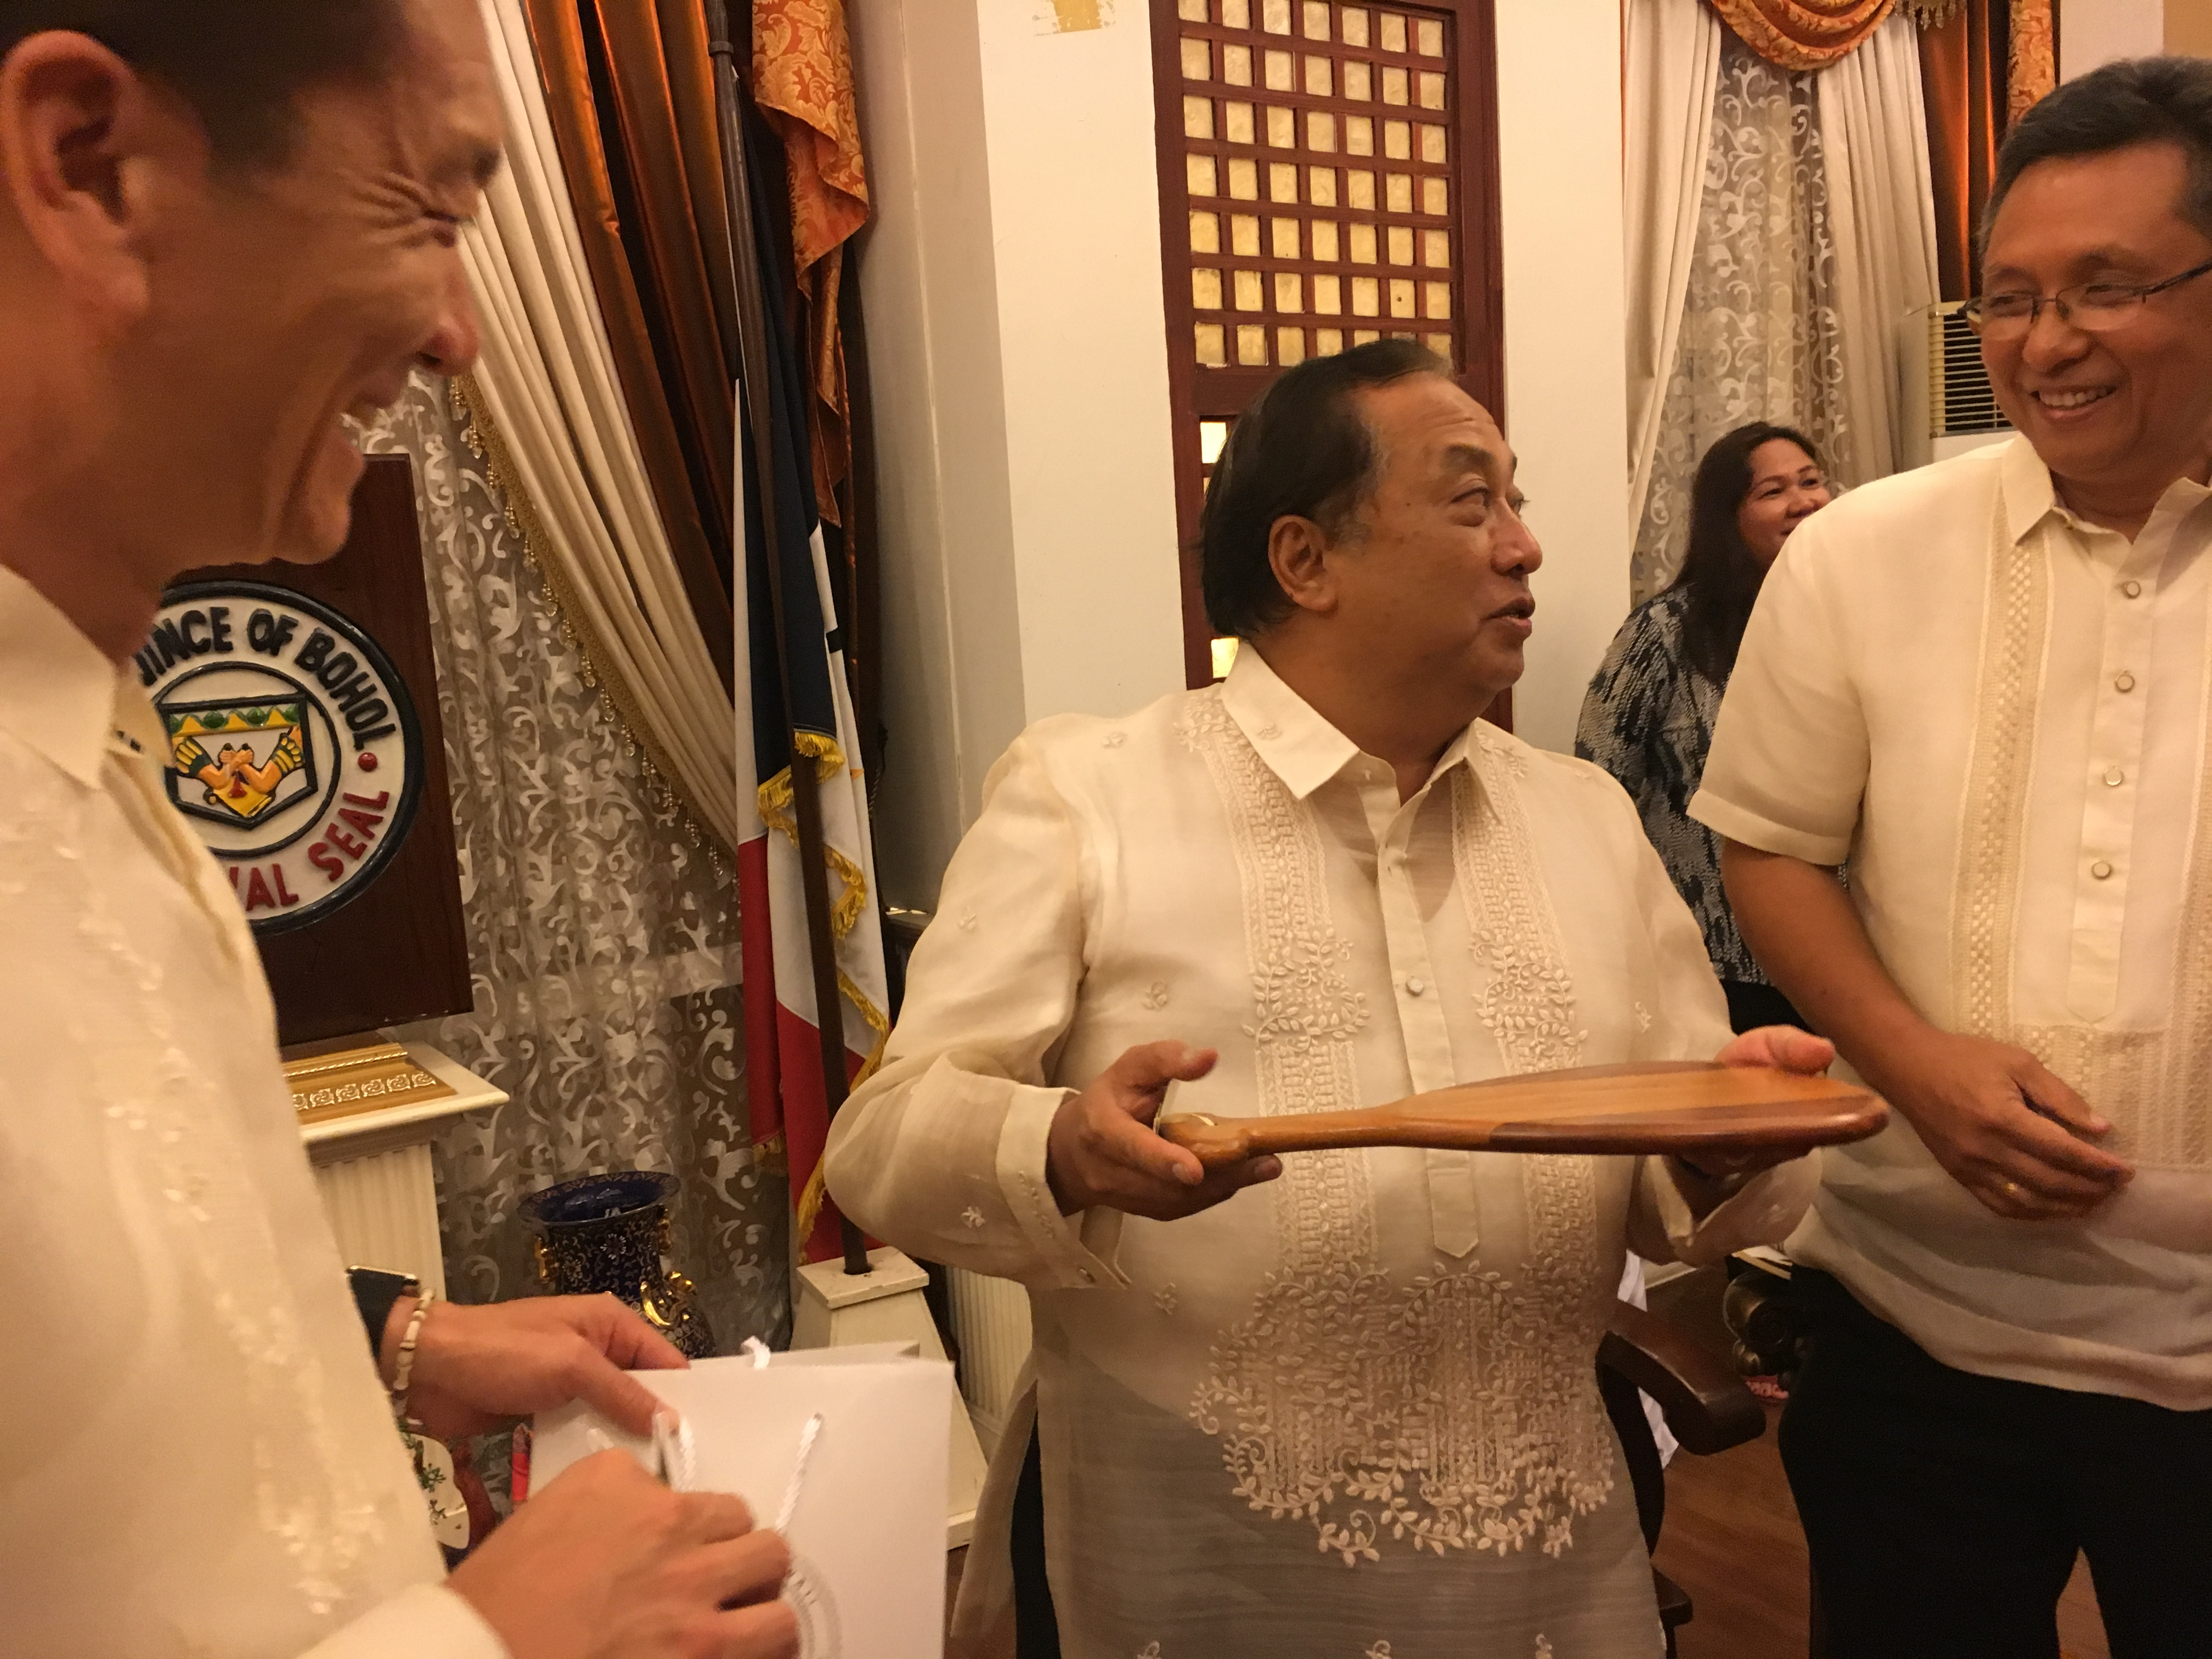 Governor Edgar Chatto shows off his gift